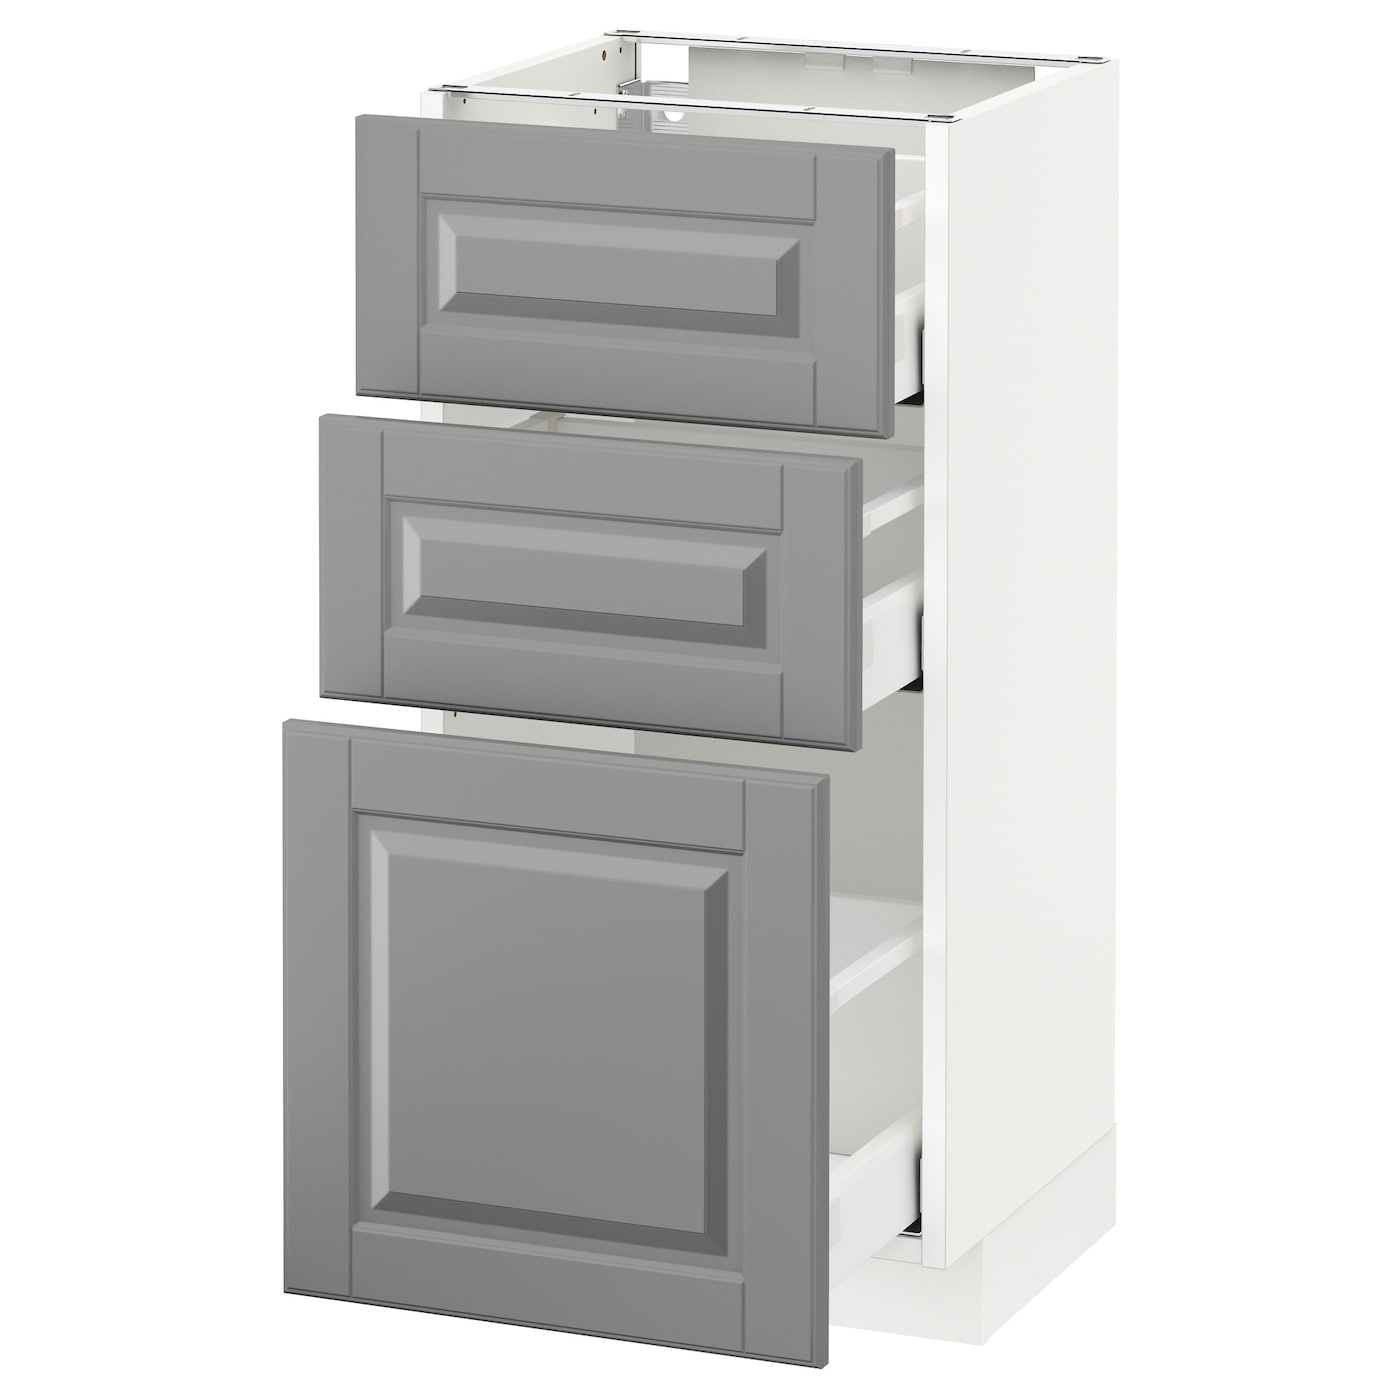 3 drawer base kitchen cabinets metod maximera base cabinet with 3 drawers white bodbyn 10158